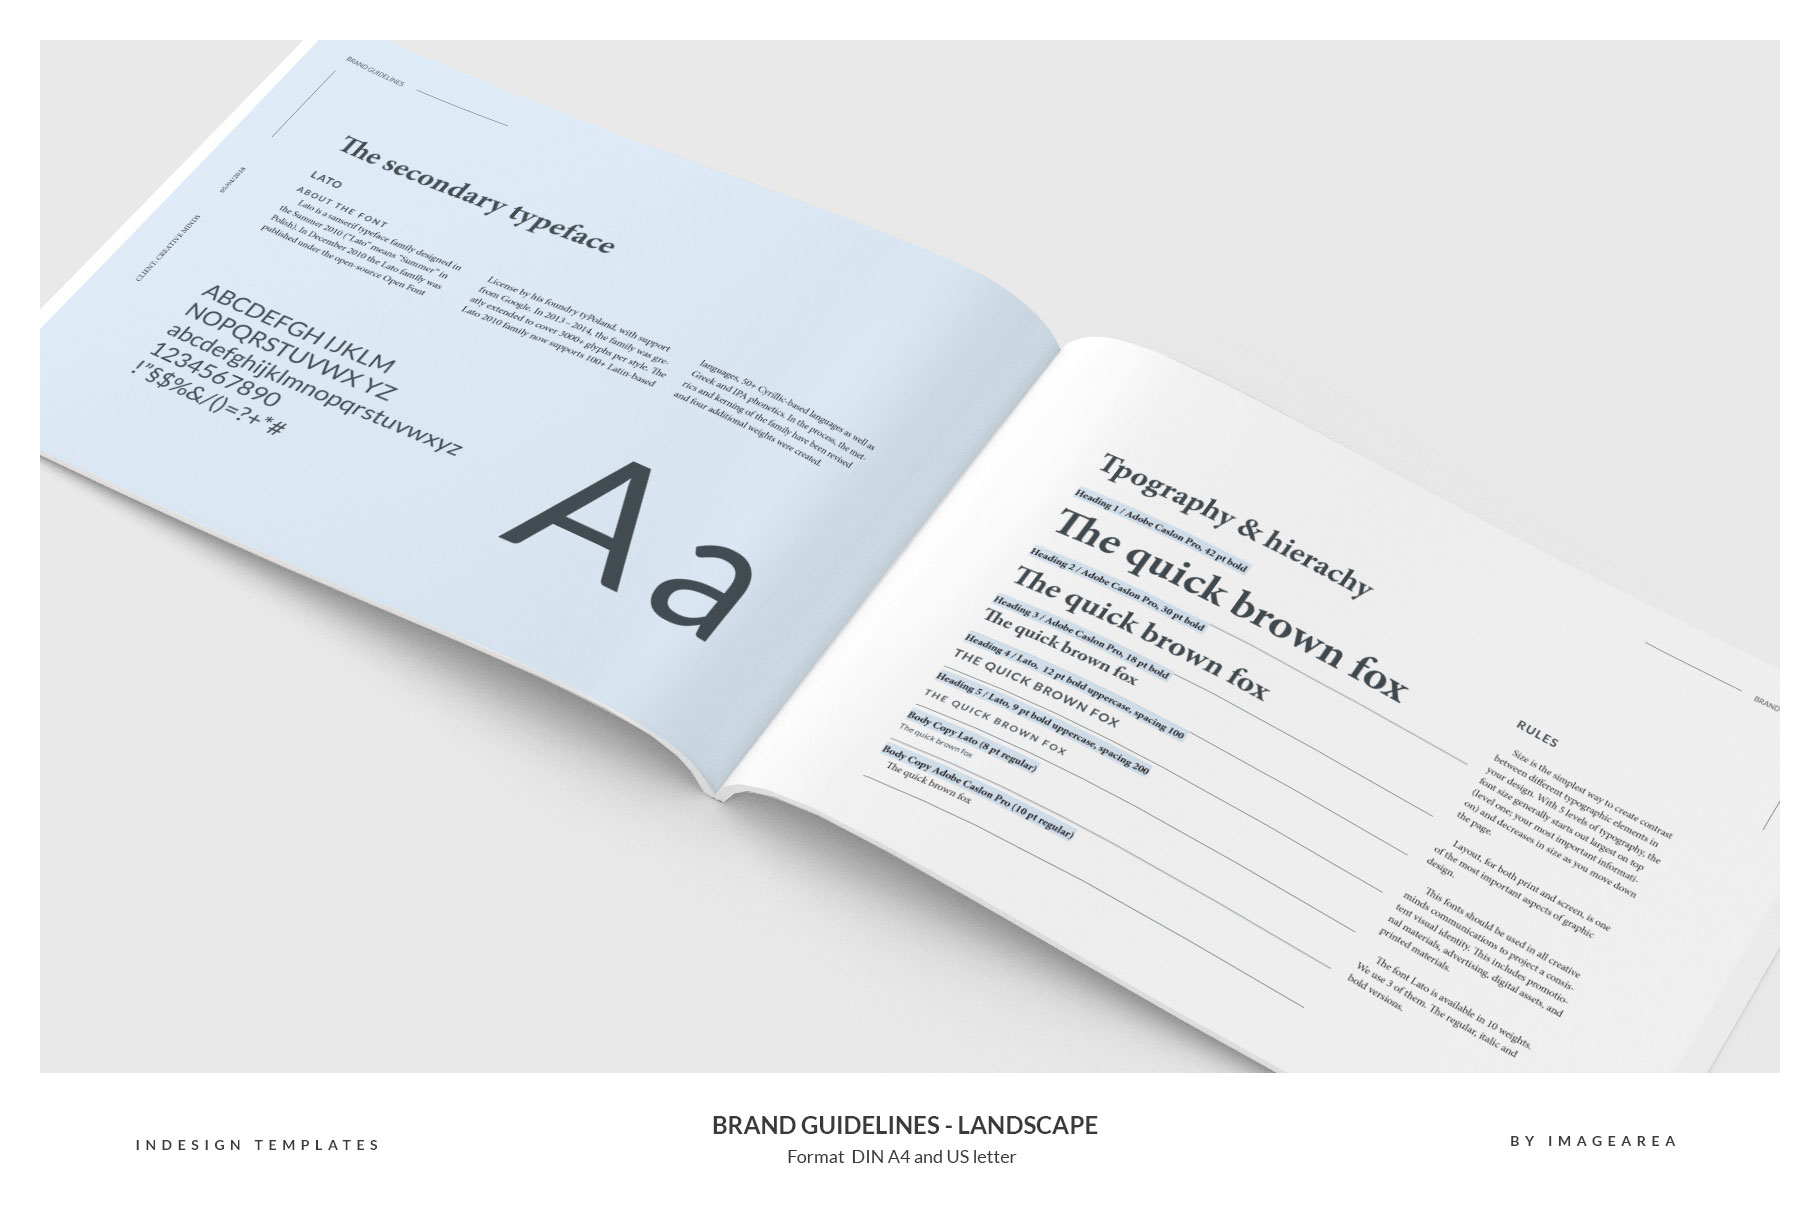 Horizontal Brand Guidelines